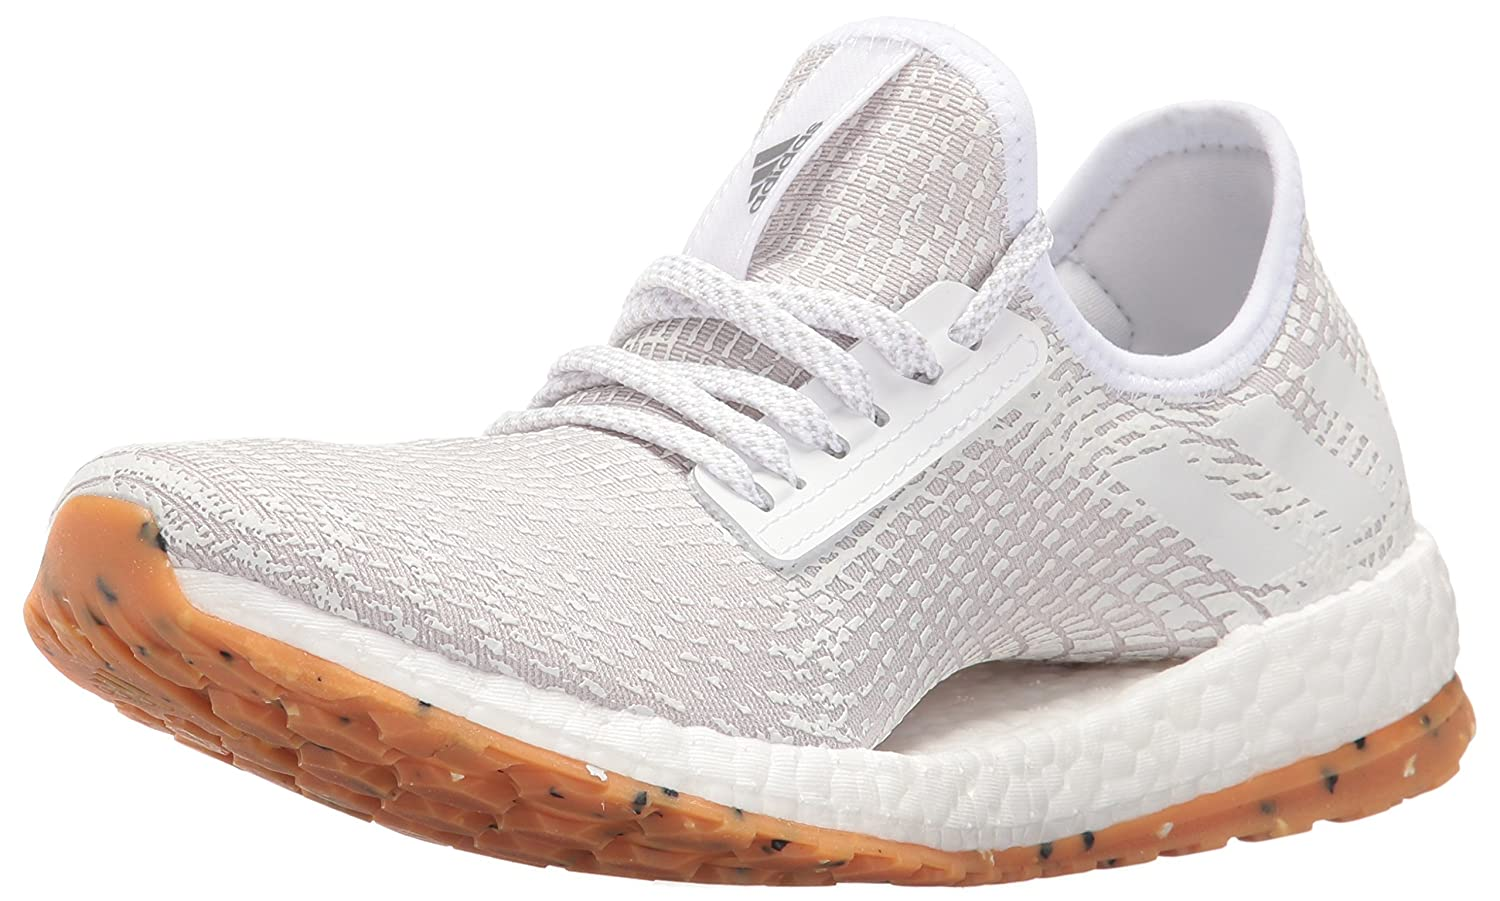 White Crystal White S16 Pearl Grey S14 Adidas Performance Women's Pureboost X